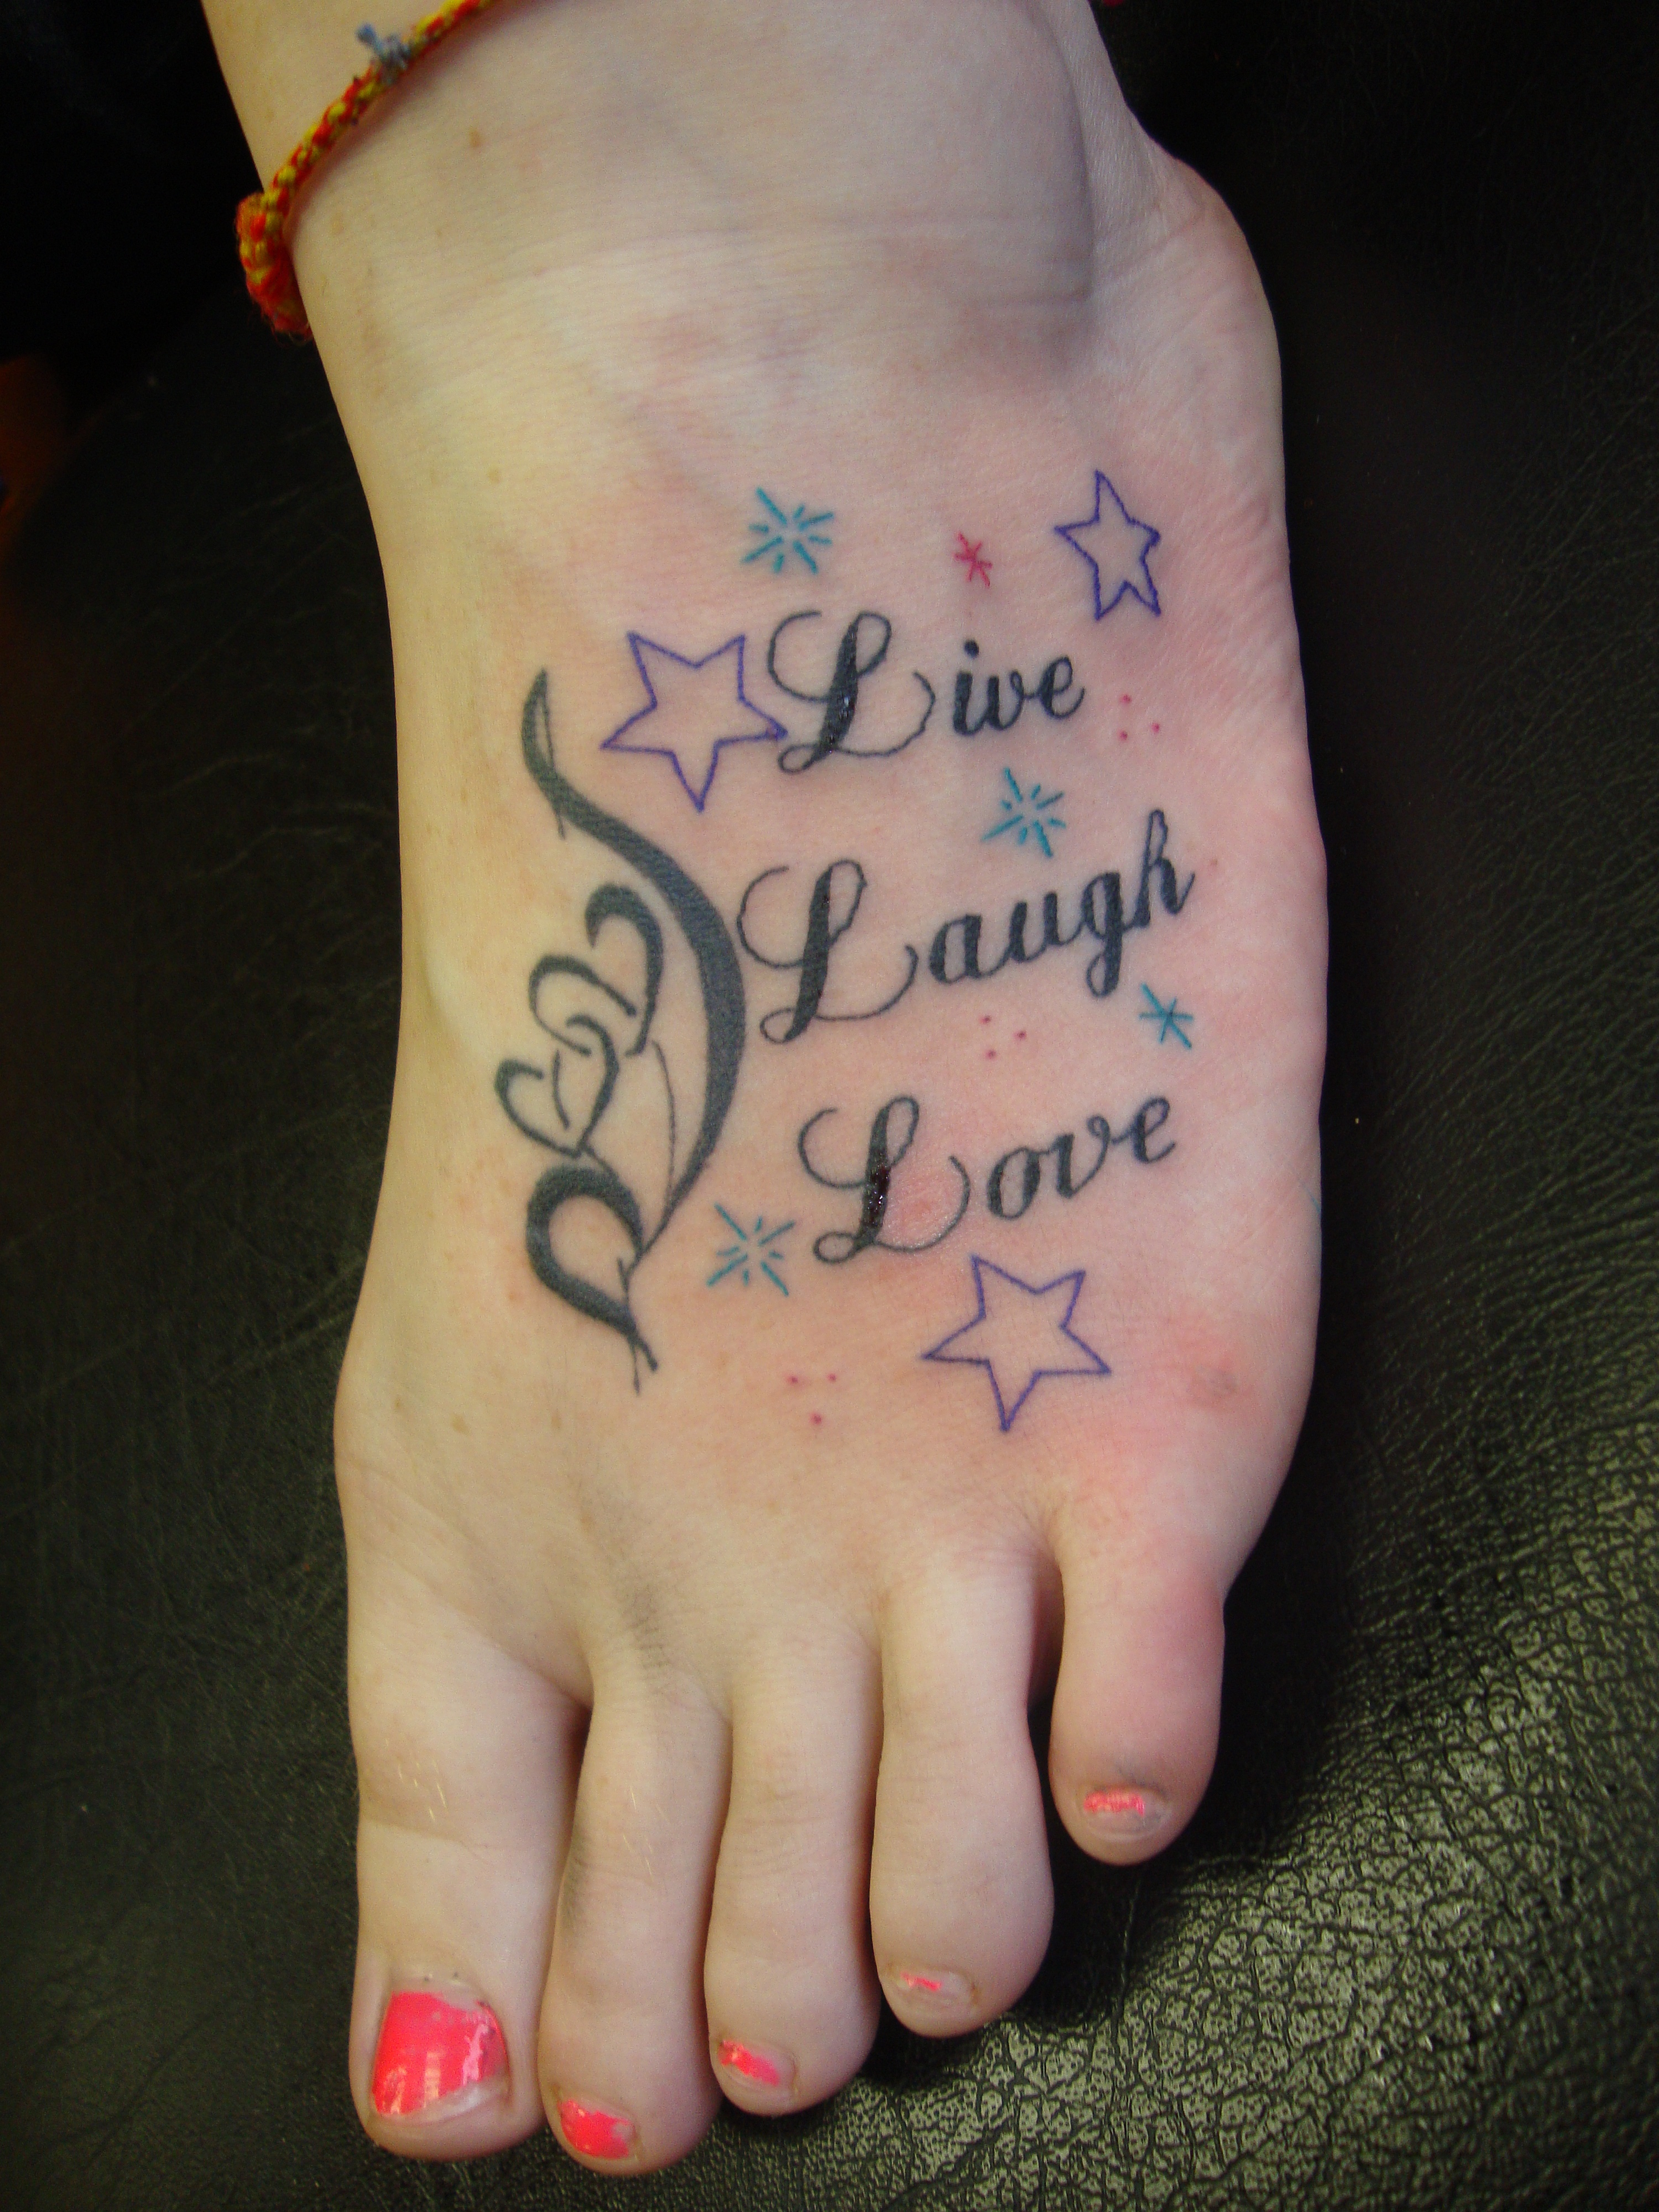 Live Laugh Love Tattoos Designs Ideas and Meaning